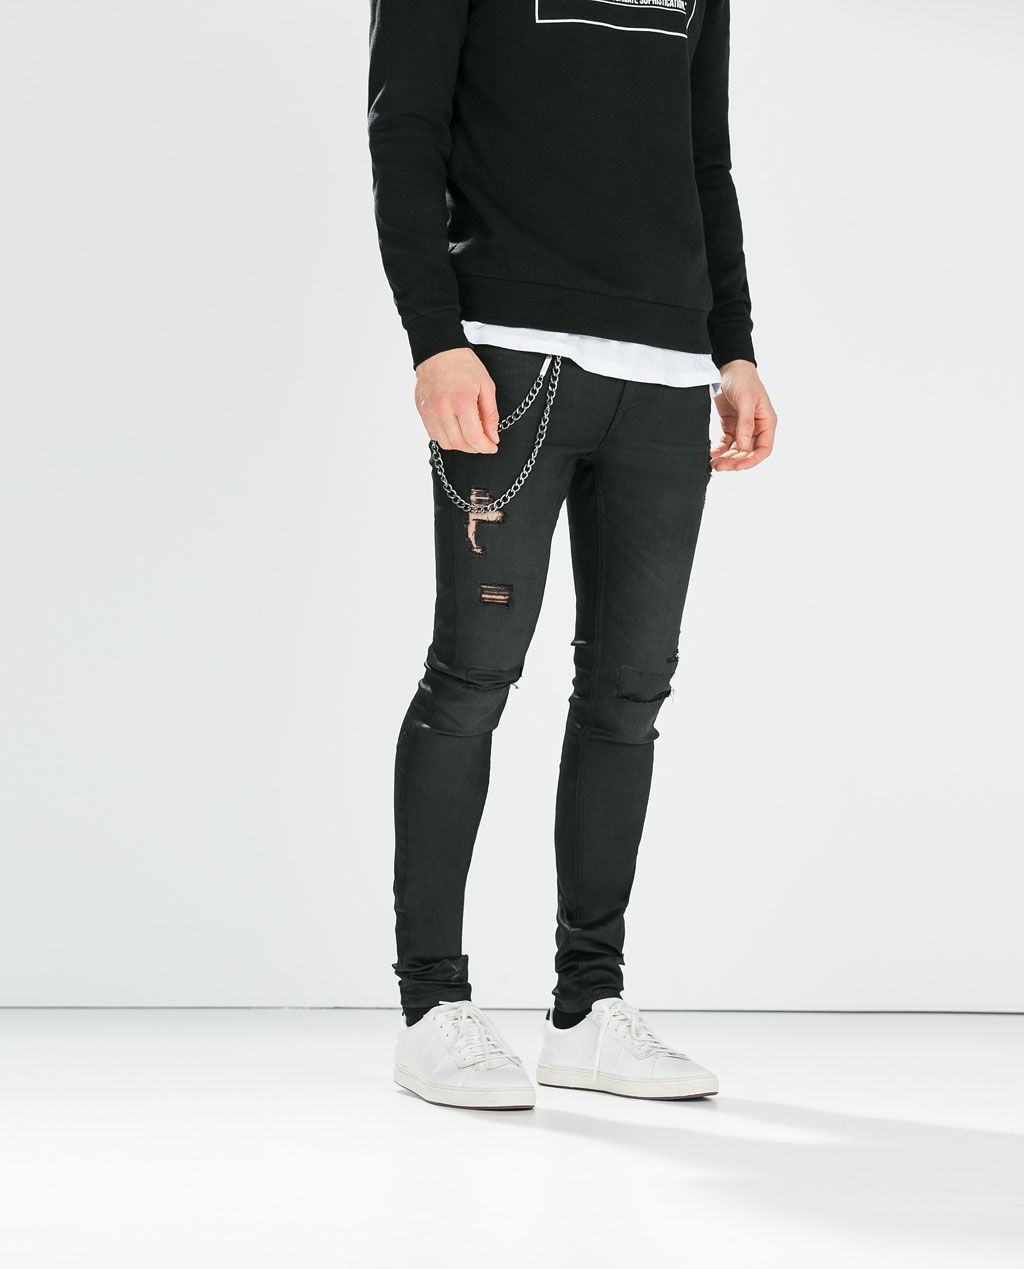 6eb7fd0ad5816 Zara - Jeans With Chain | Men's Fashion | Jeans with chains, Jeans ...